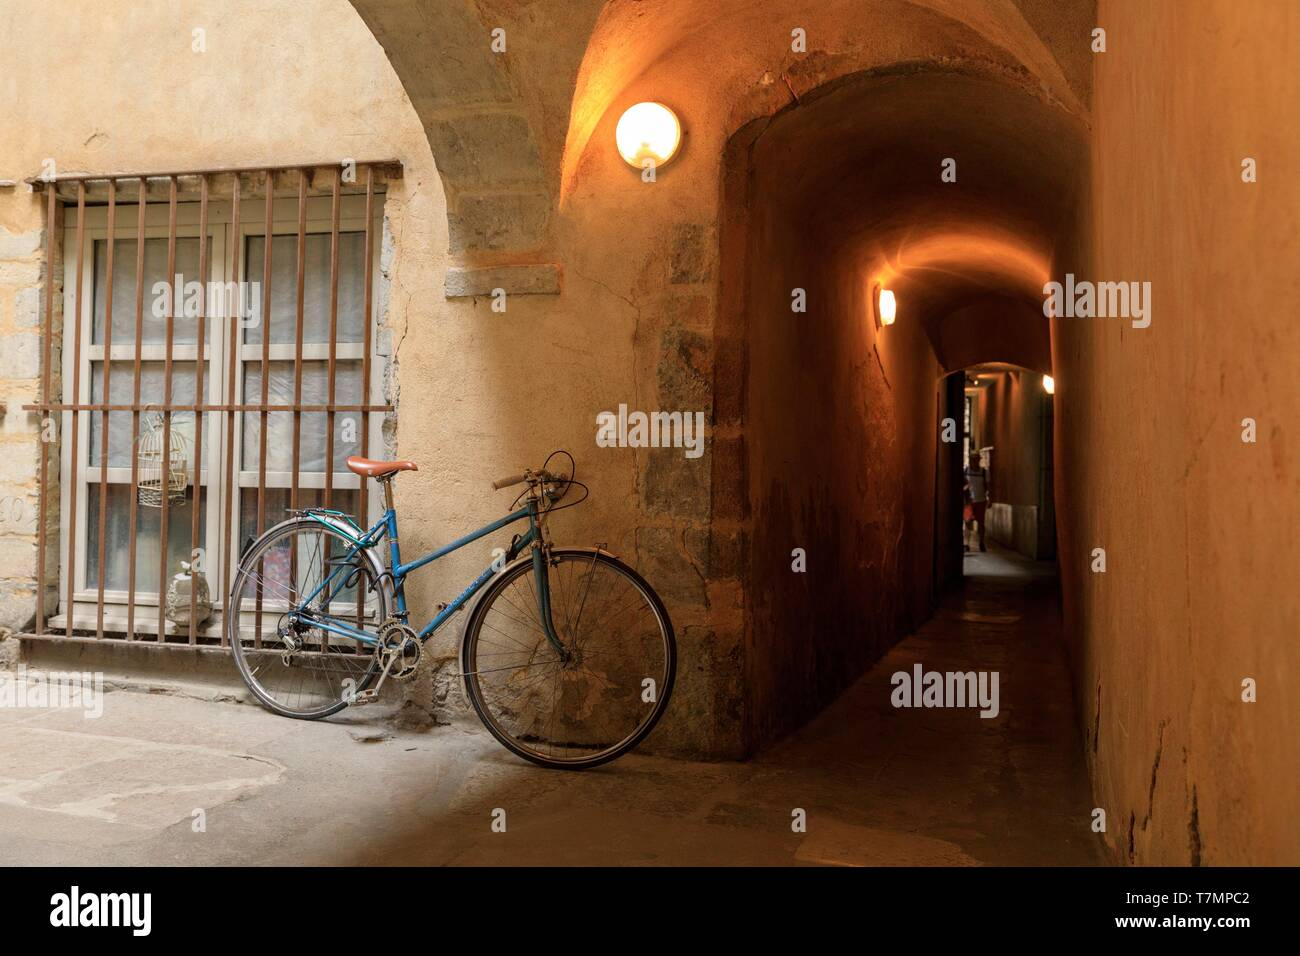 France, Rhone, Lyon, 5th district, Old Lyon district, historic site listed as World Heritage by UNESCO, rue Saint Jean, Traboule Stock Photo